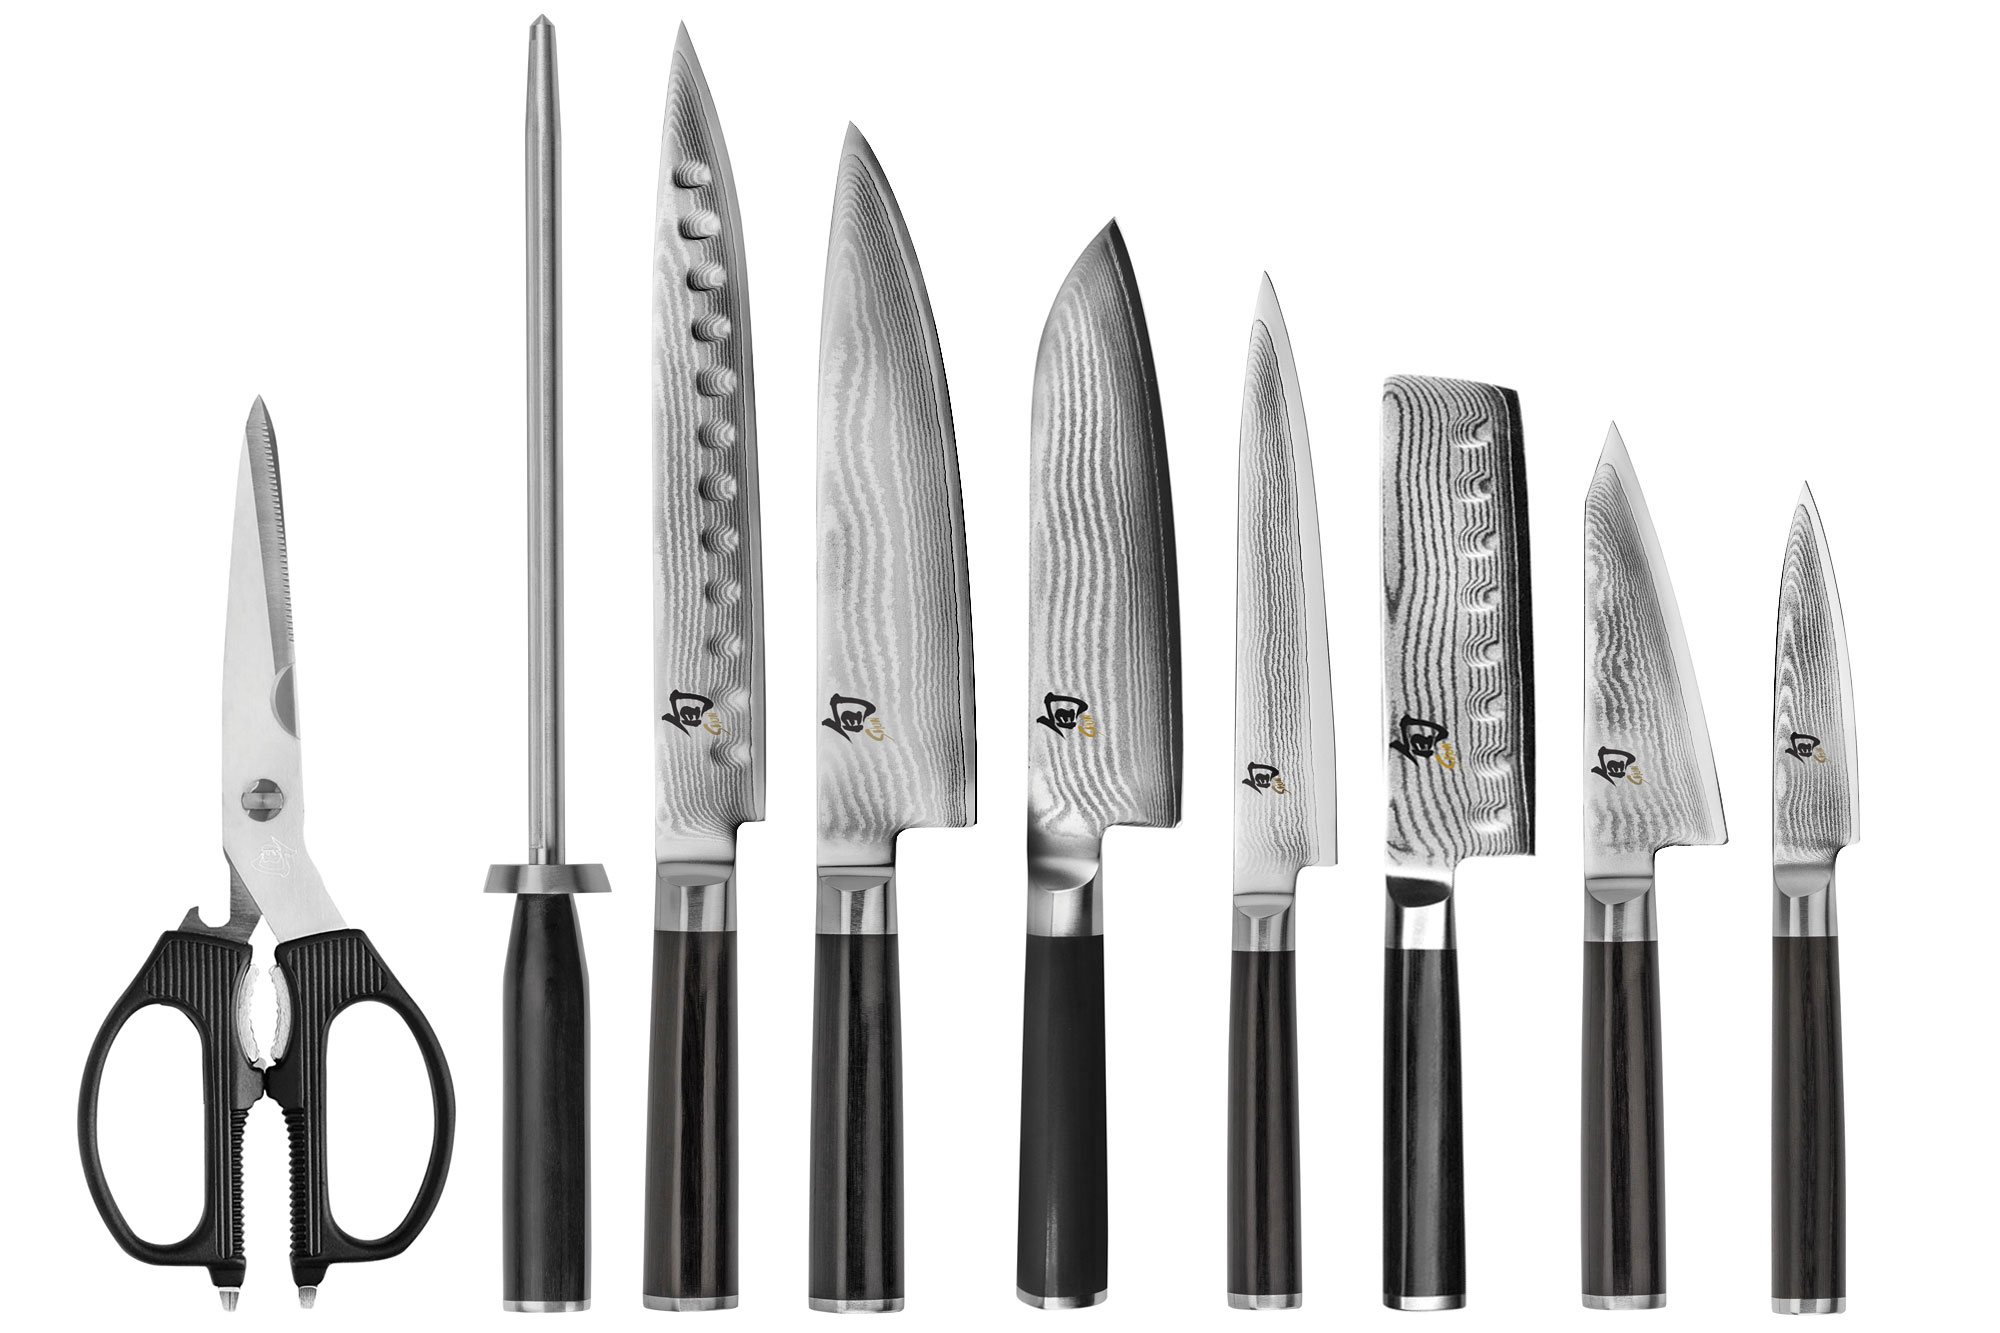 henckels kitchen shears one handle faucet shun classic knife set 10-piece block - japanese chef ...